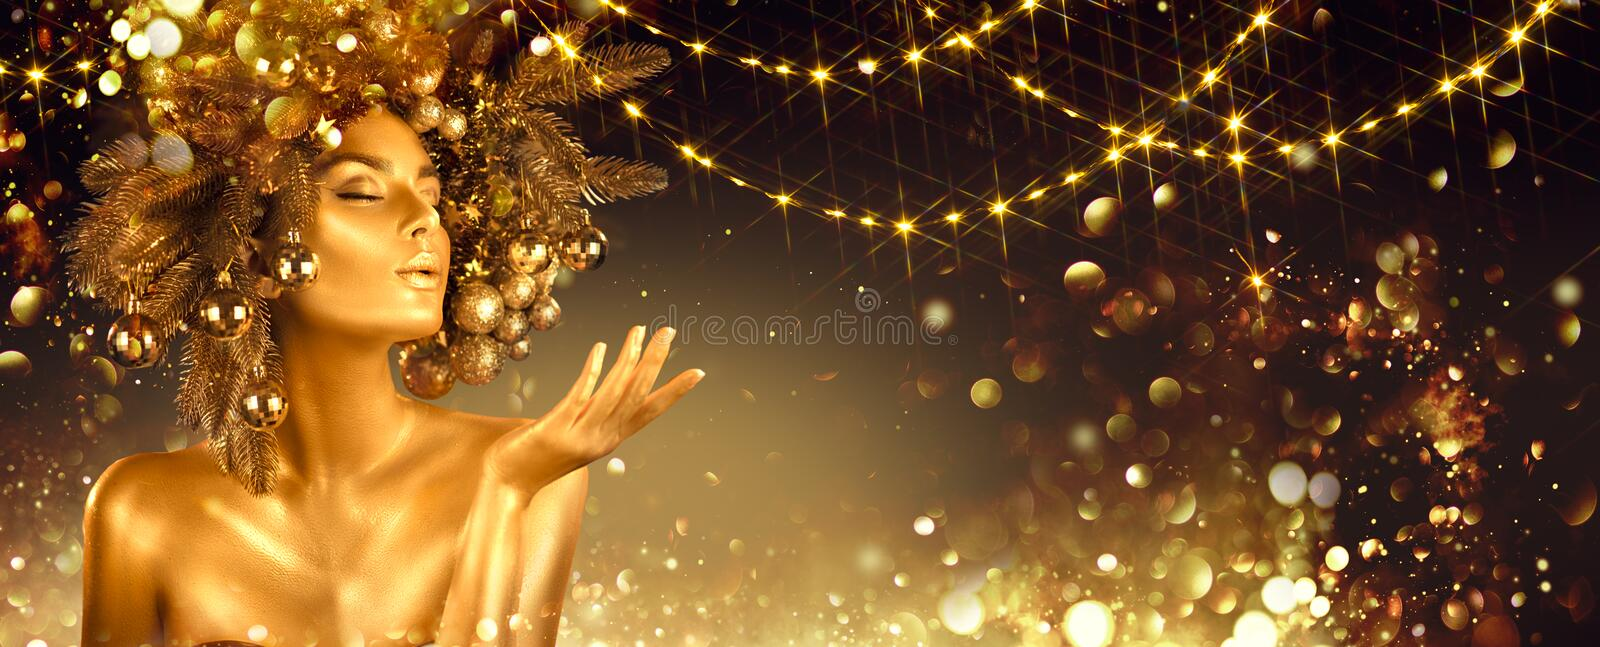 Christmas golden Woman. Winter girl pointing Hand, blowing blinking stars, Beautiful New Year, Christmas Tree Holiday Hairstyle royalty free stock photos